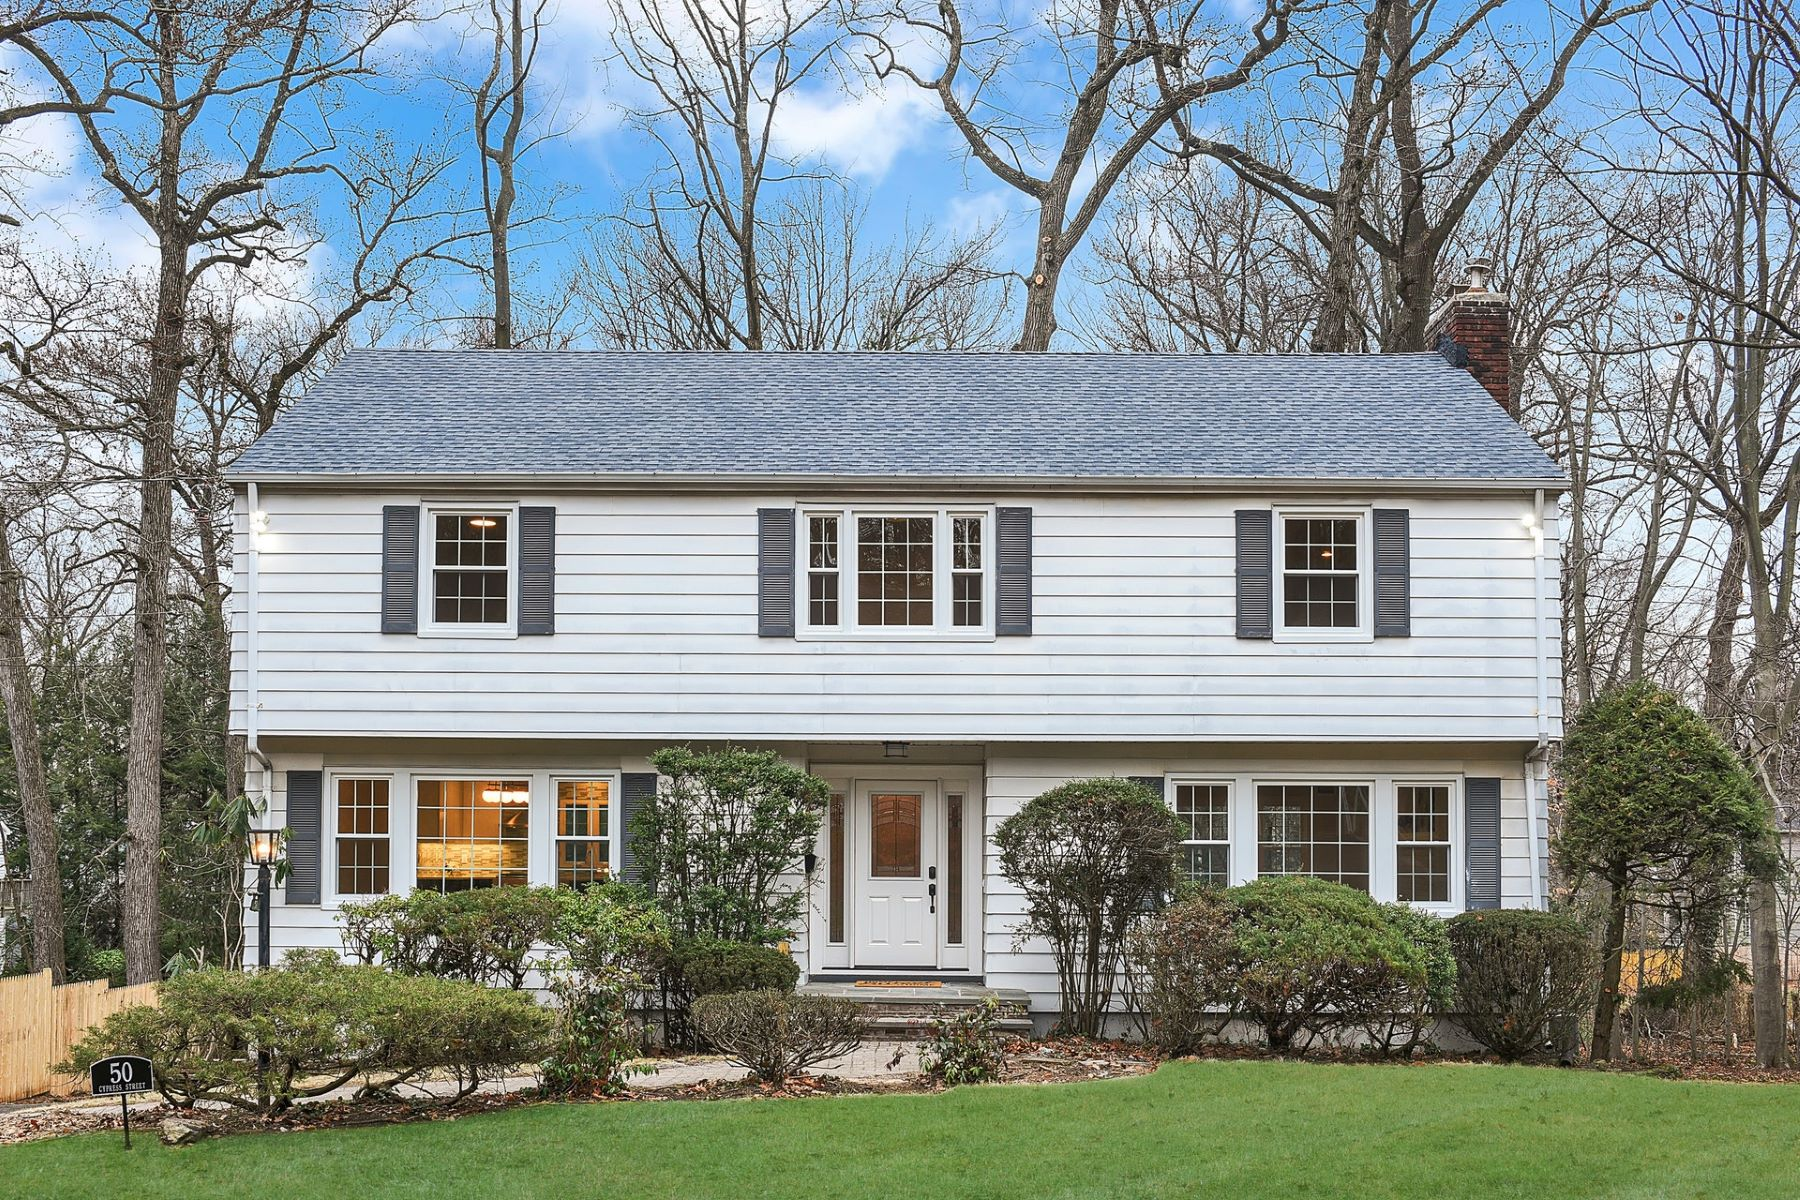 Single Family Homes for Sale at East Hill 50 Cypress St, Tenafly, New Jersey 07670 United States